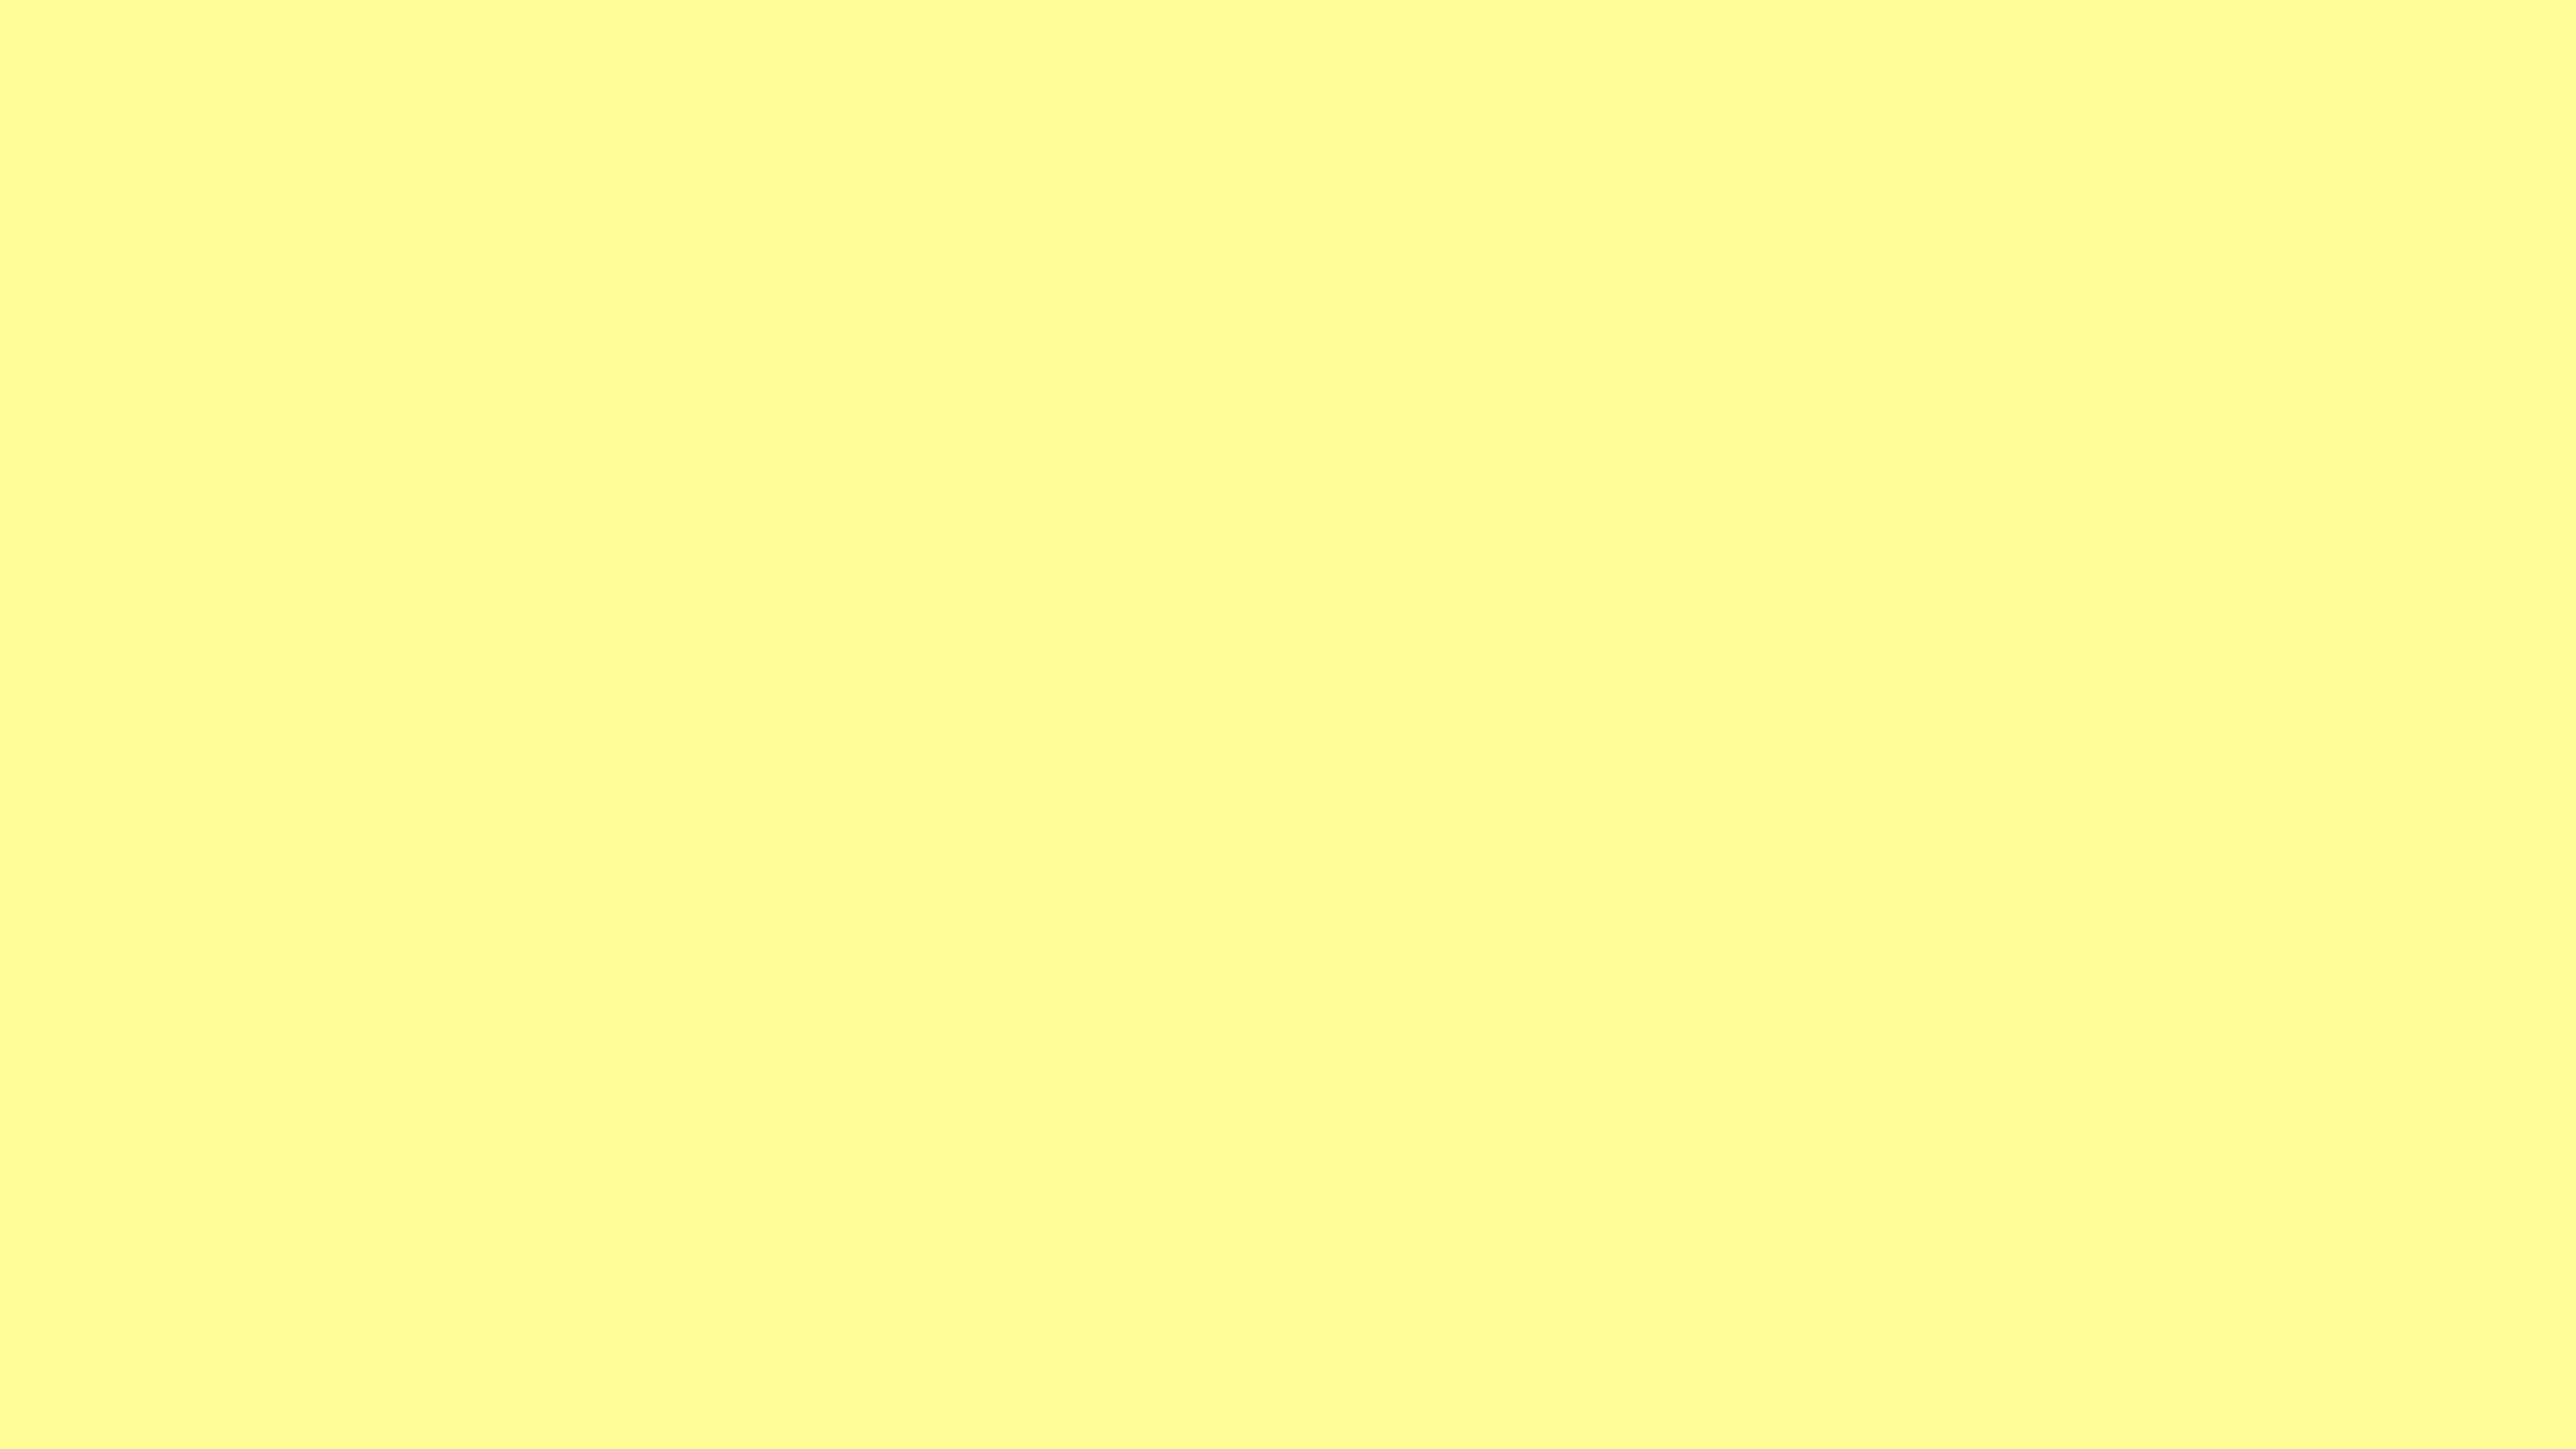 7680x4320 Pastel Yellow Solid Color Background